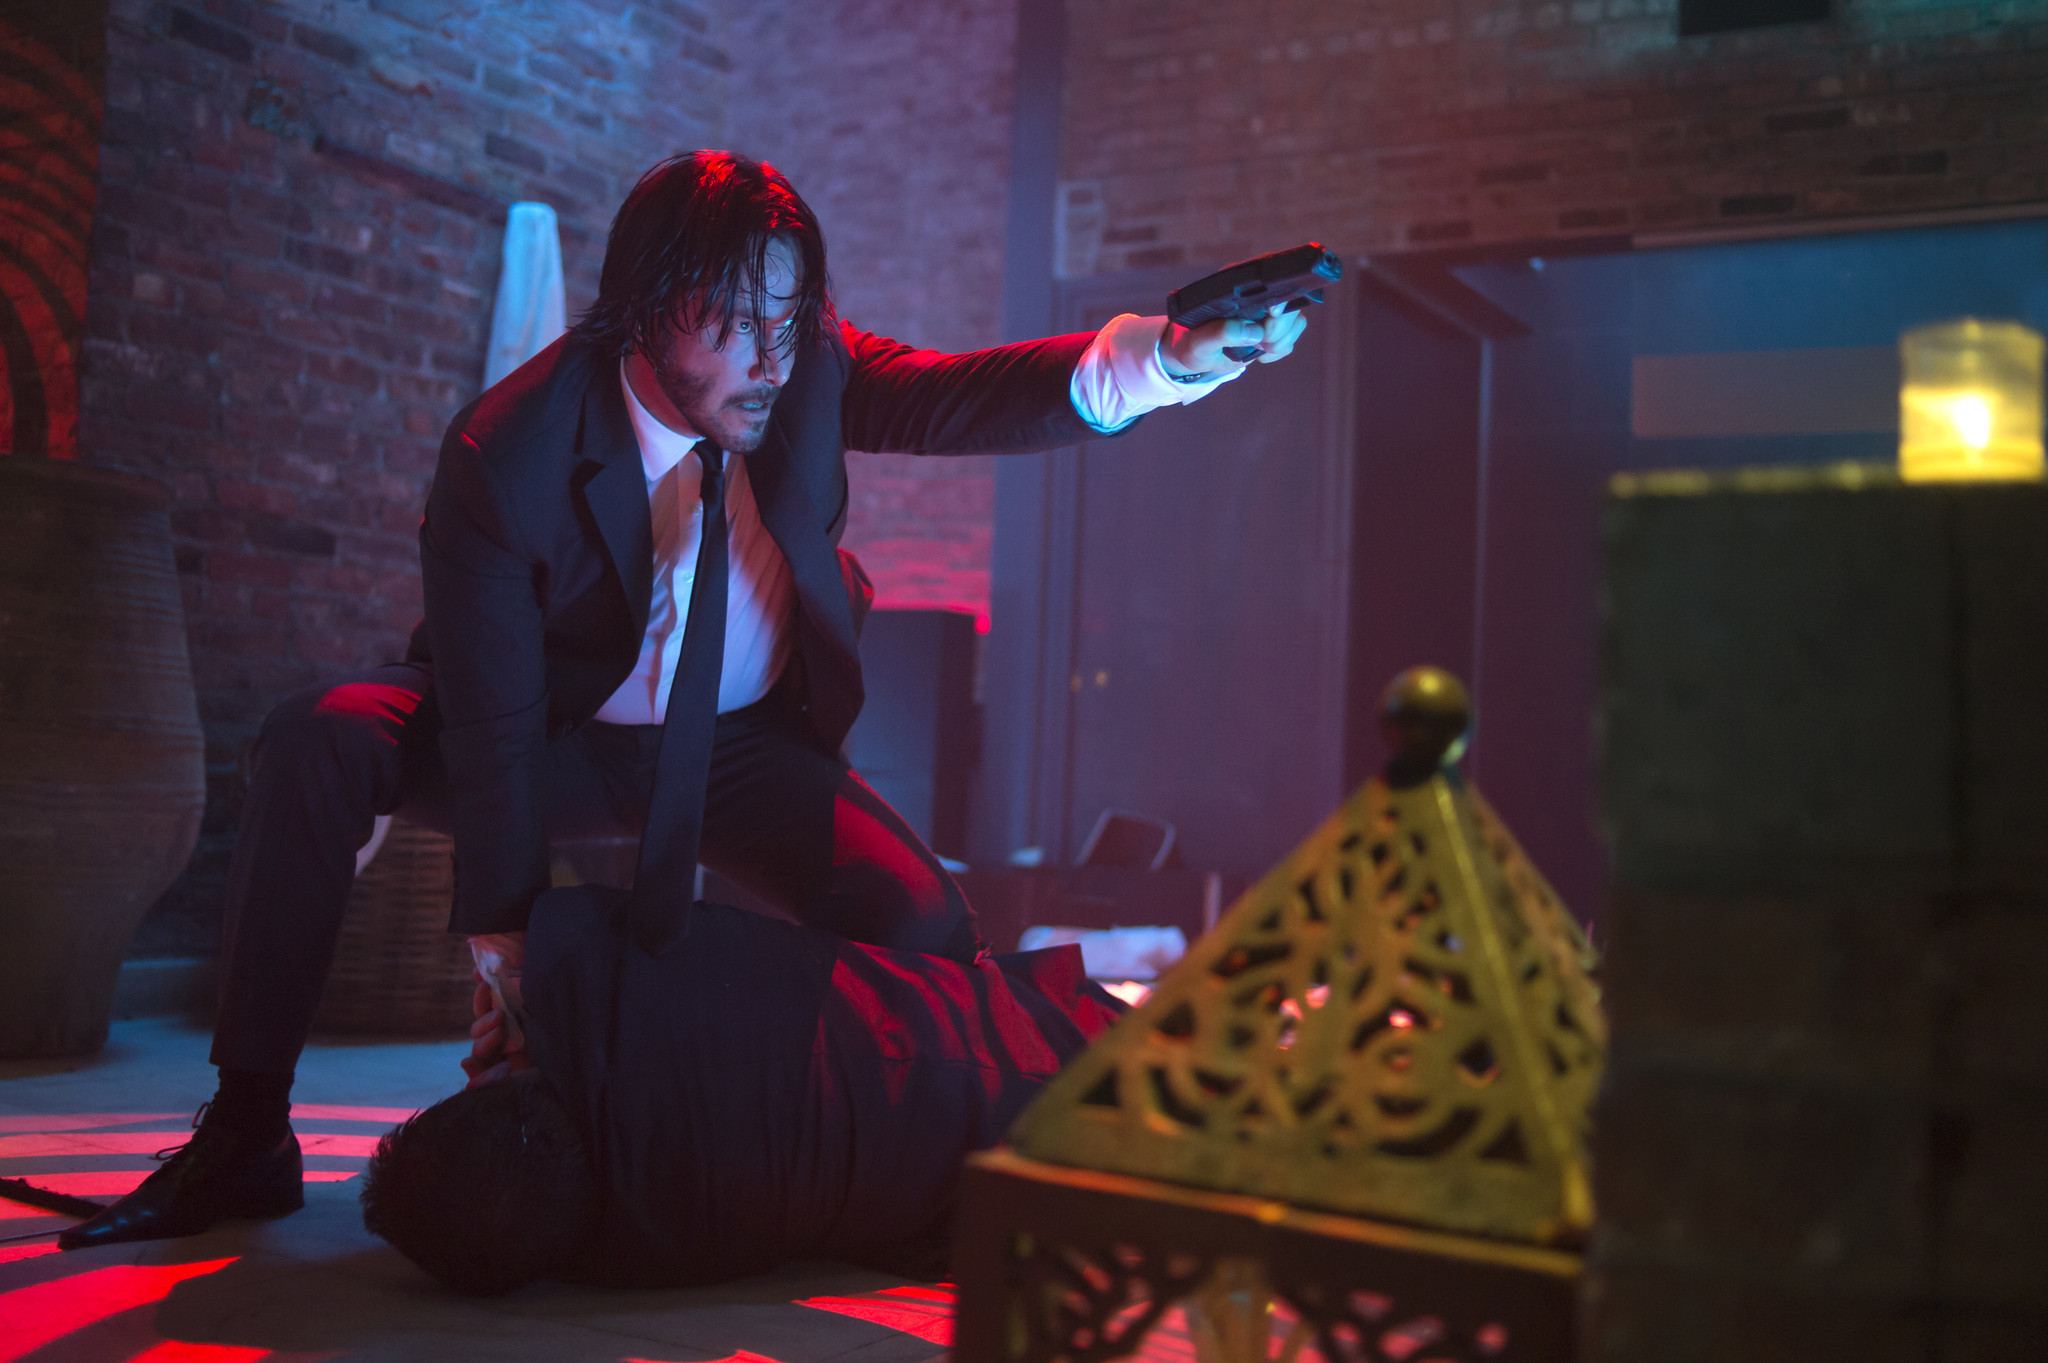 Keanu Reeves is on fire in 'John Wick,' reviews say